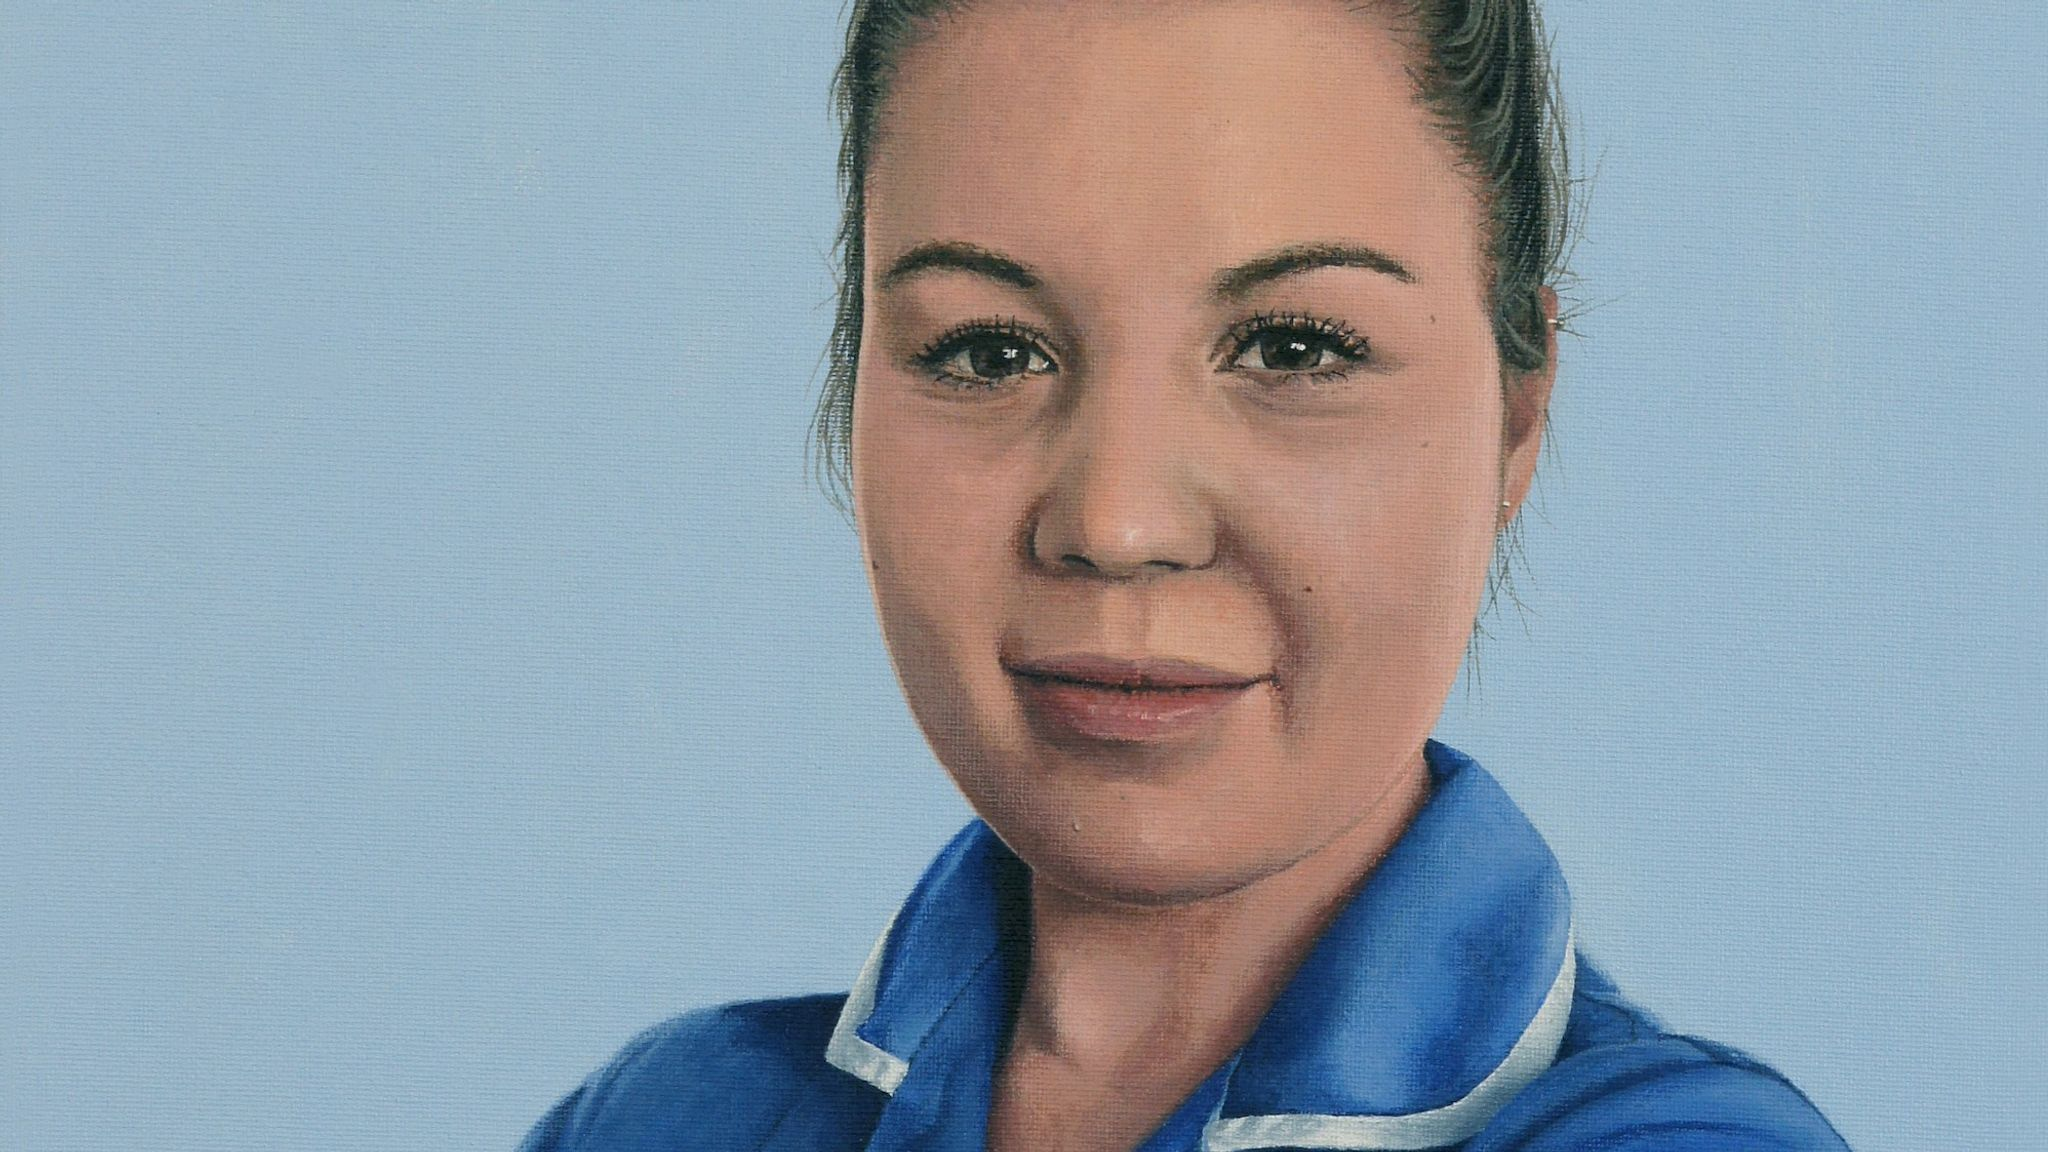 Steph Hedge by Peter Davis, for the NHS Heroes virtual exhibition